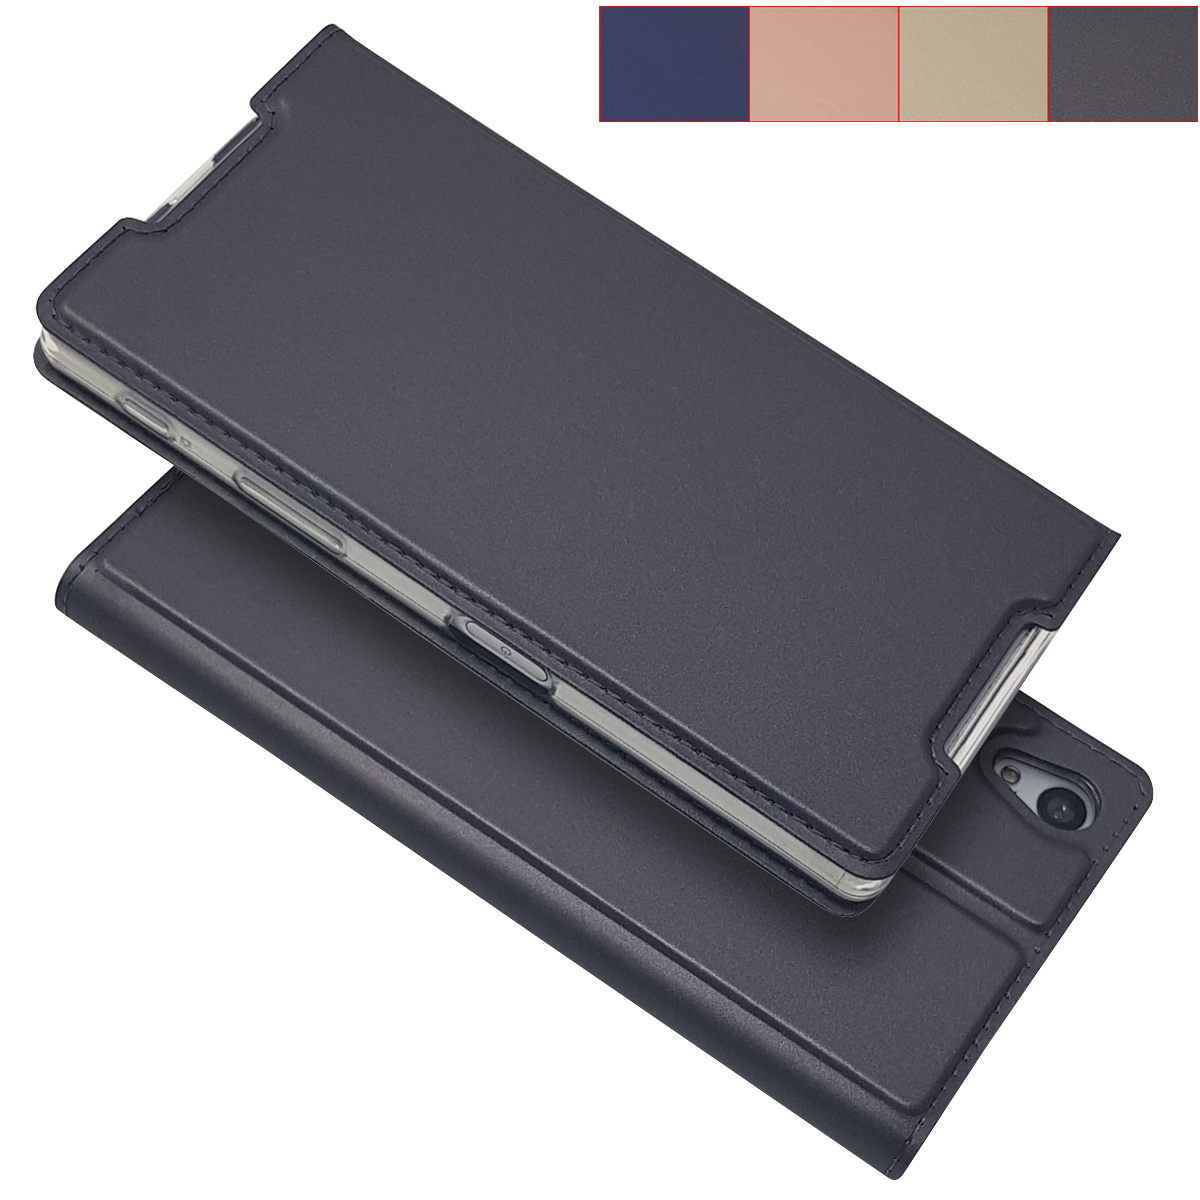 Matte Wallet Case Flip Case for <font><b>Sony</b></font> <font><b>Xperia</b></font> <font><b>Z5</b></font> E6603 E6633 <font><b>E6683</b></font> Magnetic adsorption Cover phone case for <font><b>Sony</b></font> <font><b>Z5</b></font> image